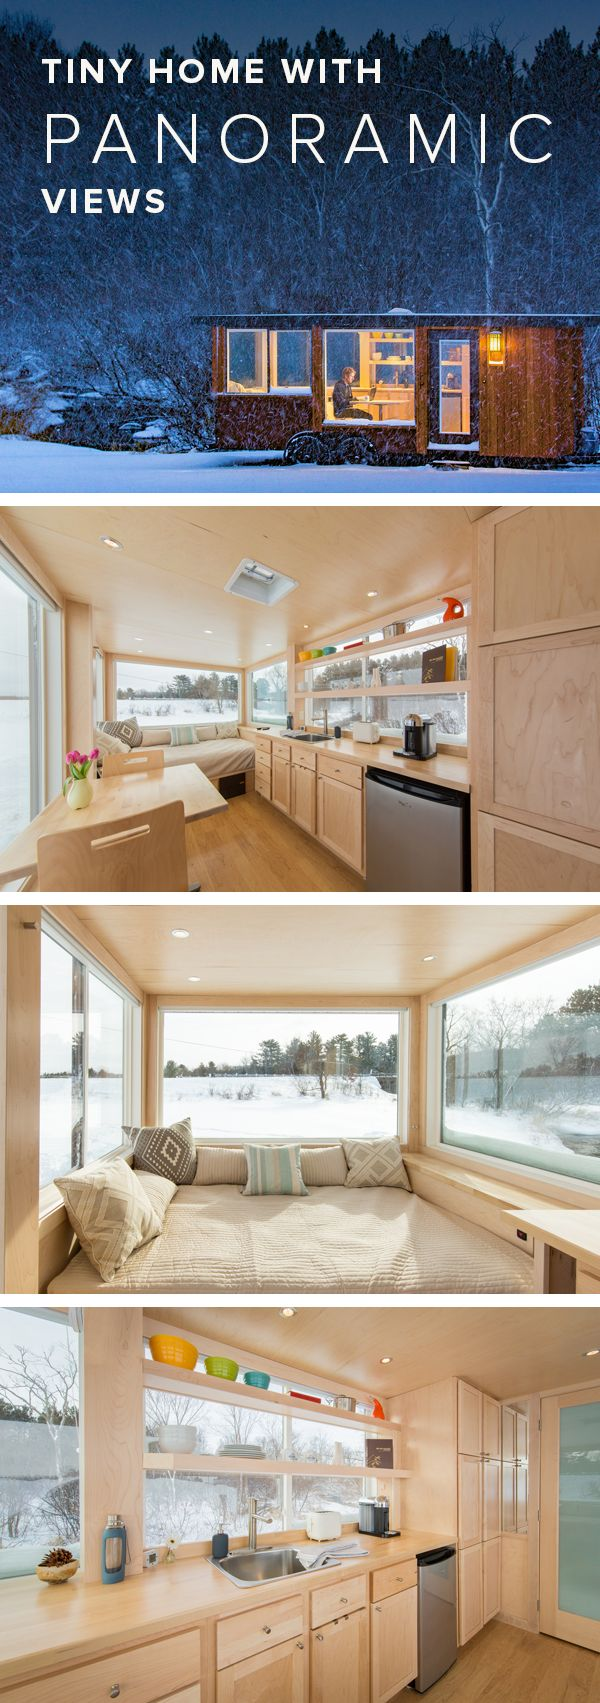 The breathtaking interiors and exteriors of this tiny house provide the ultimate home decor inspiration.